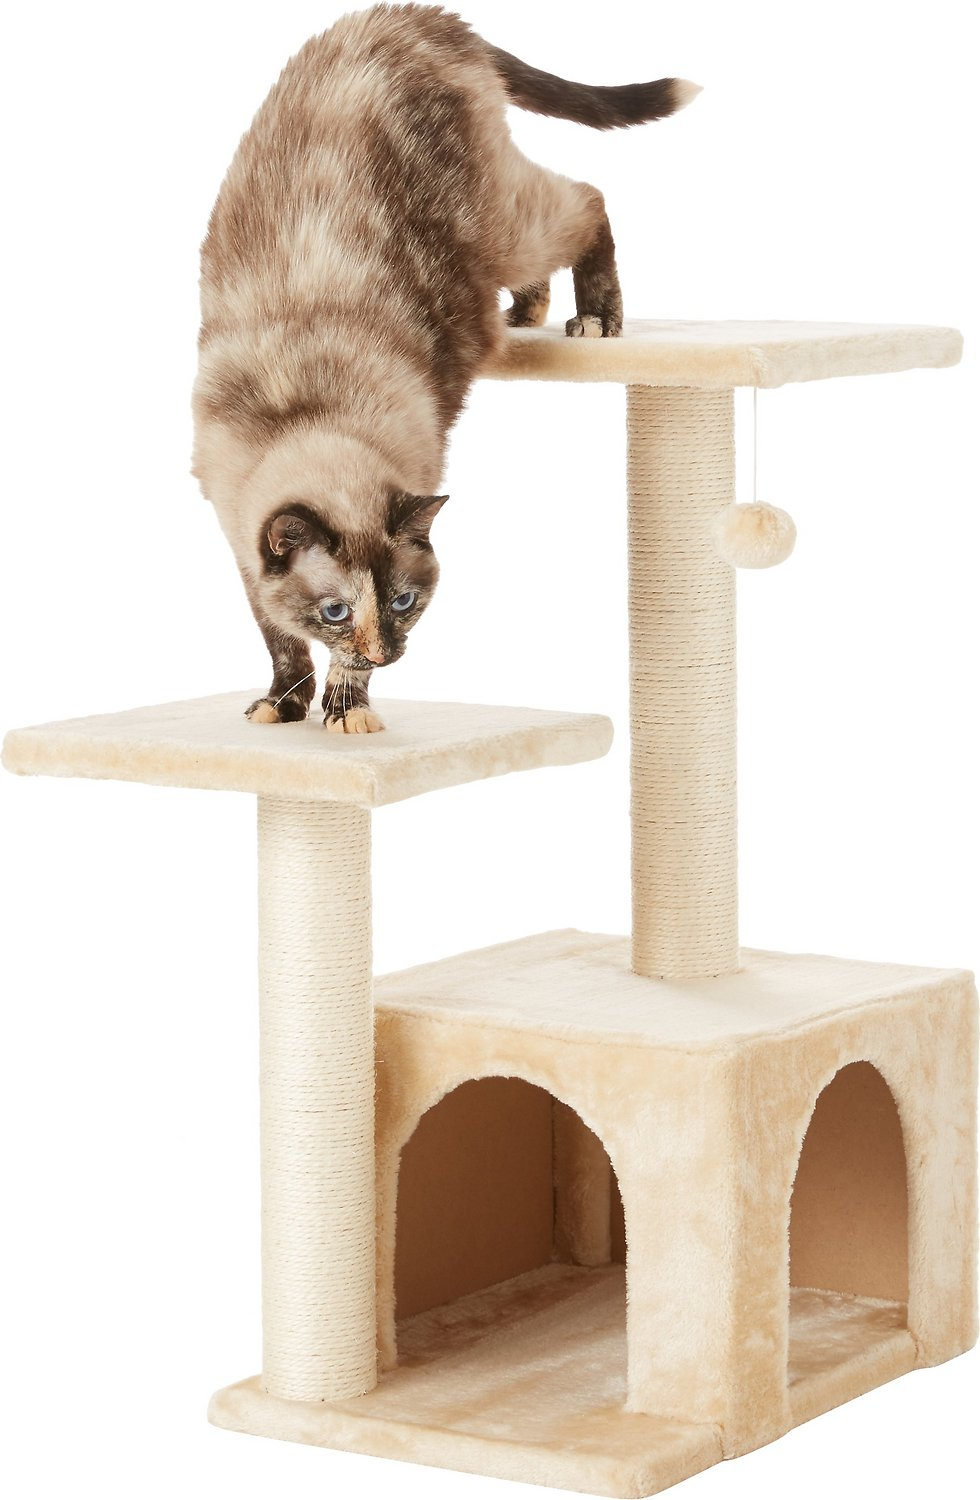 Frisco 28-in Faux Fur Cat Tree & Condo with Free Shipping From Chewy